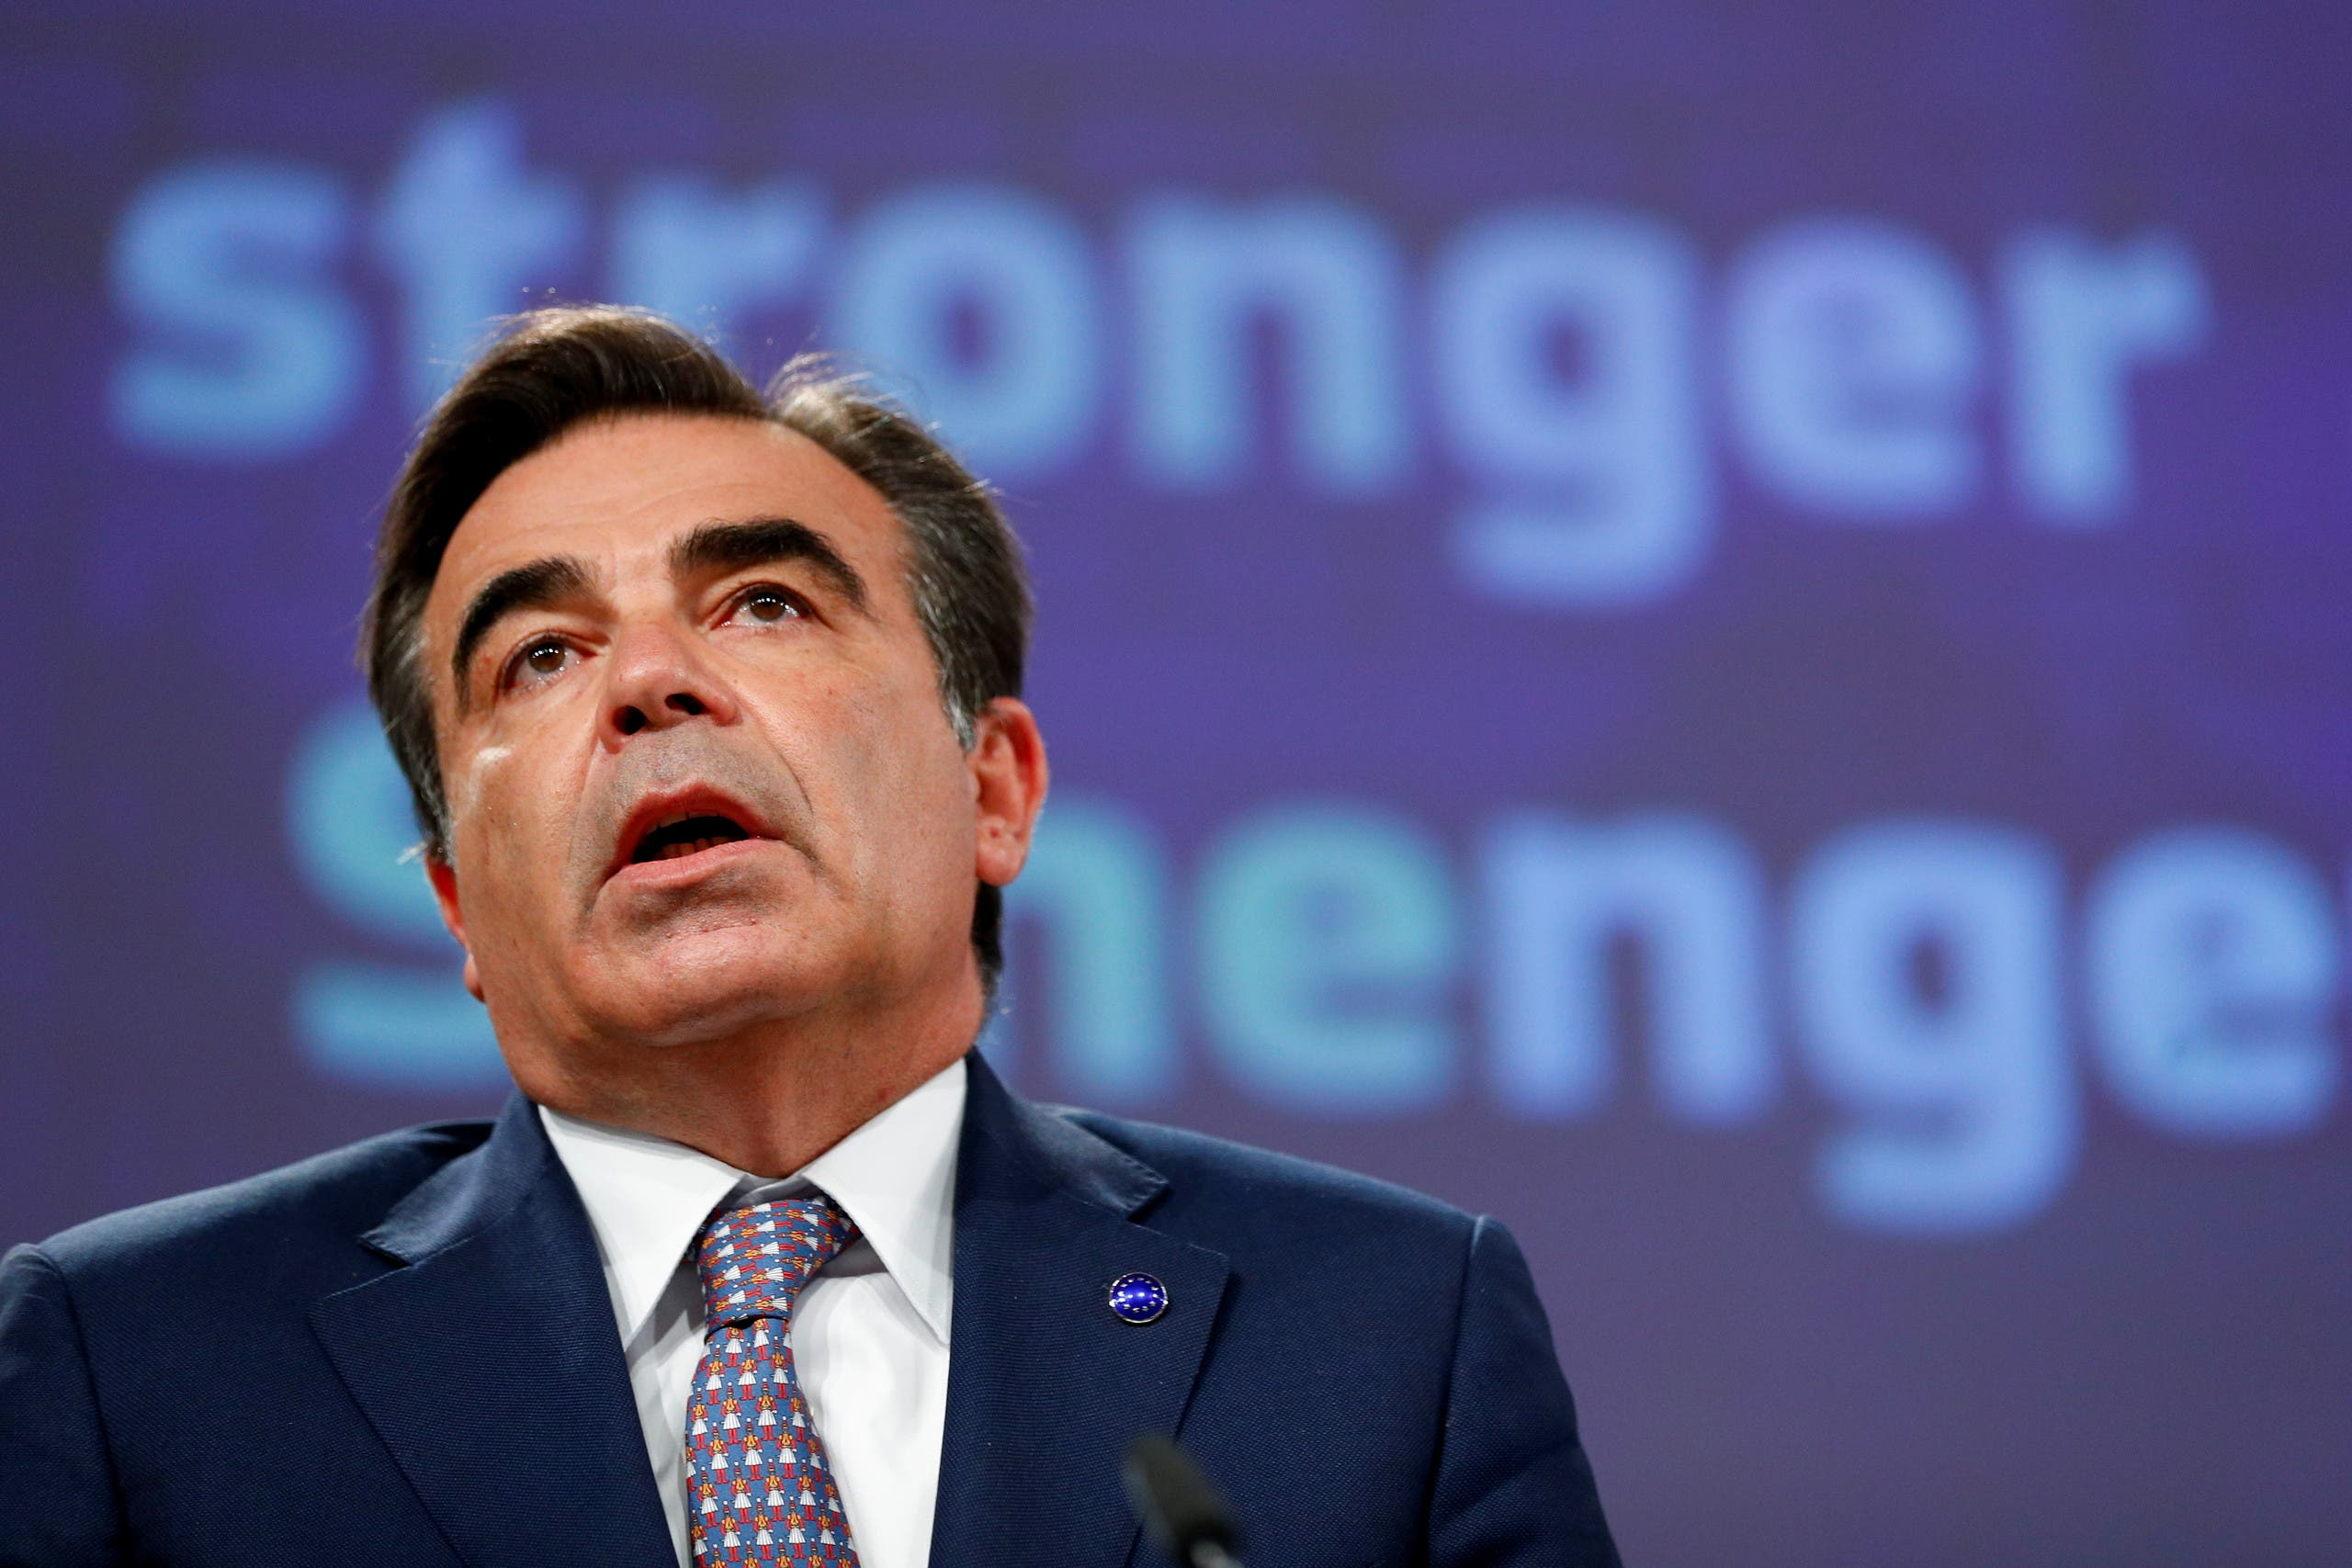 European Commission Vice President Margaritis Schinas presents a strategy for the future of Schengen and an Amendment of the Regulation establishing the Schengen Evaluation Mechanism in Brussels, Belgium June 2, 2021. (File photo: Reuters)